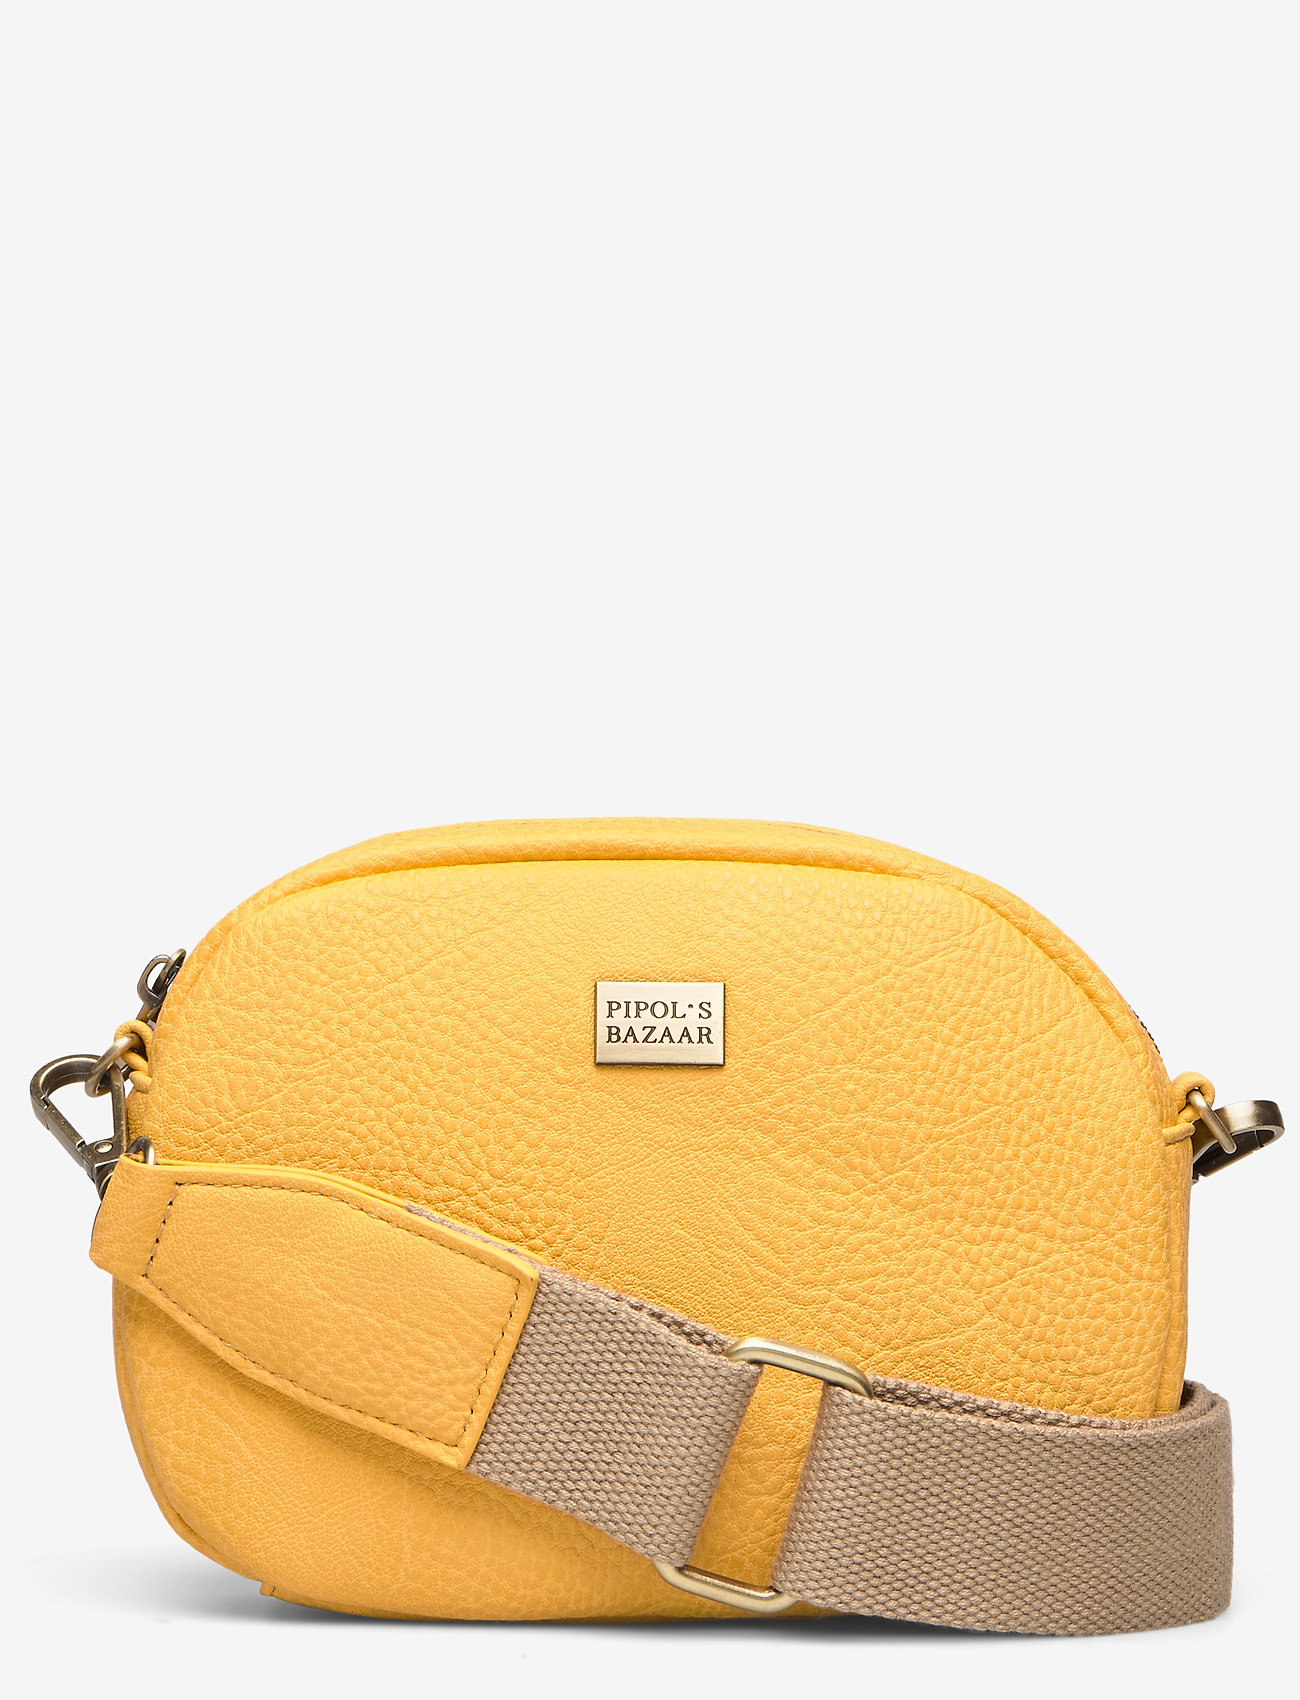 PIPOL'S BAZAAR - Solar Mini Cross PIPOL Bag Yellow - shoulder bags - yellow